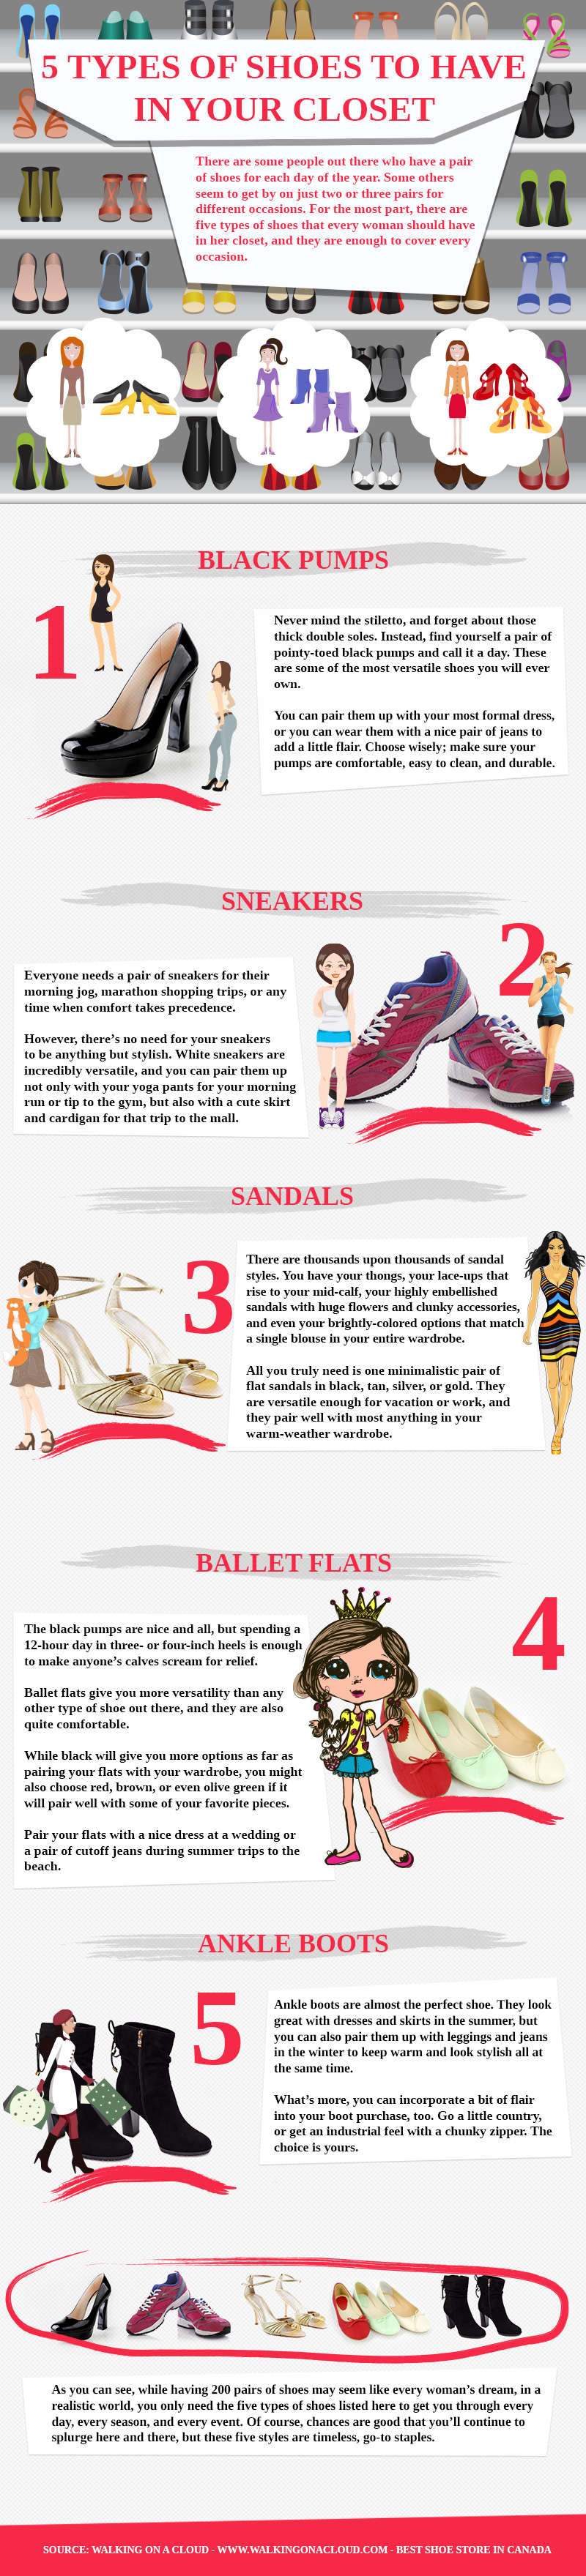 5-Types-of-Shoes-to-Have-in-Your-Closet